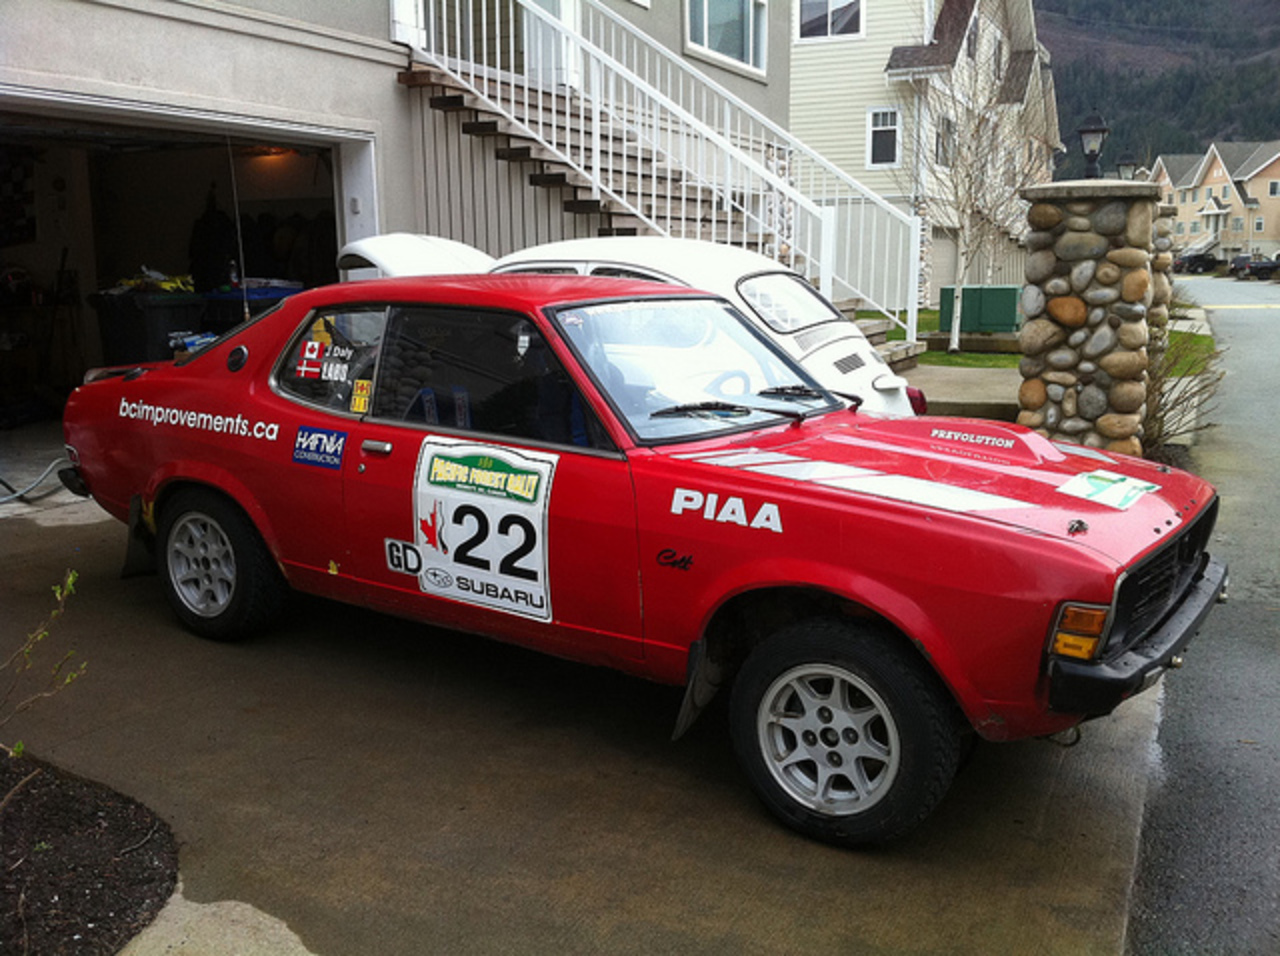 1974 Dodge Colt (Mitsubishi Galant) rally car | Flickr - Photo ...